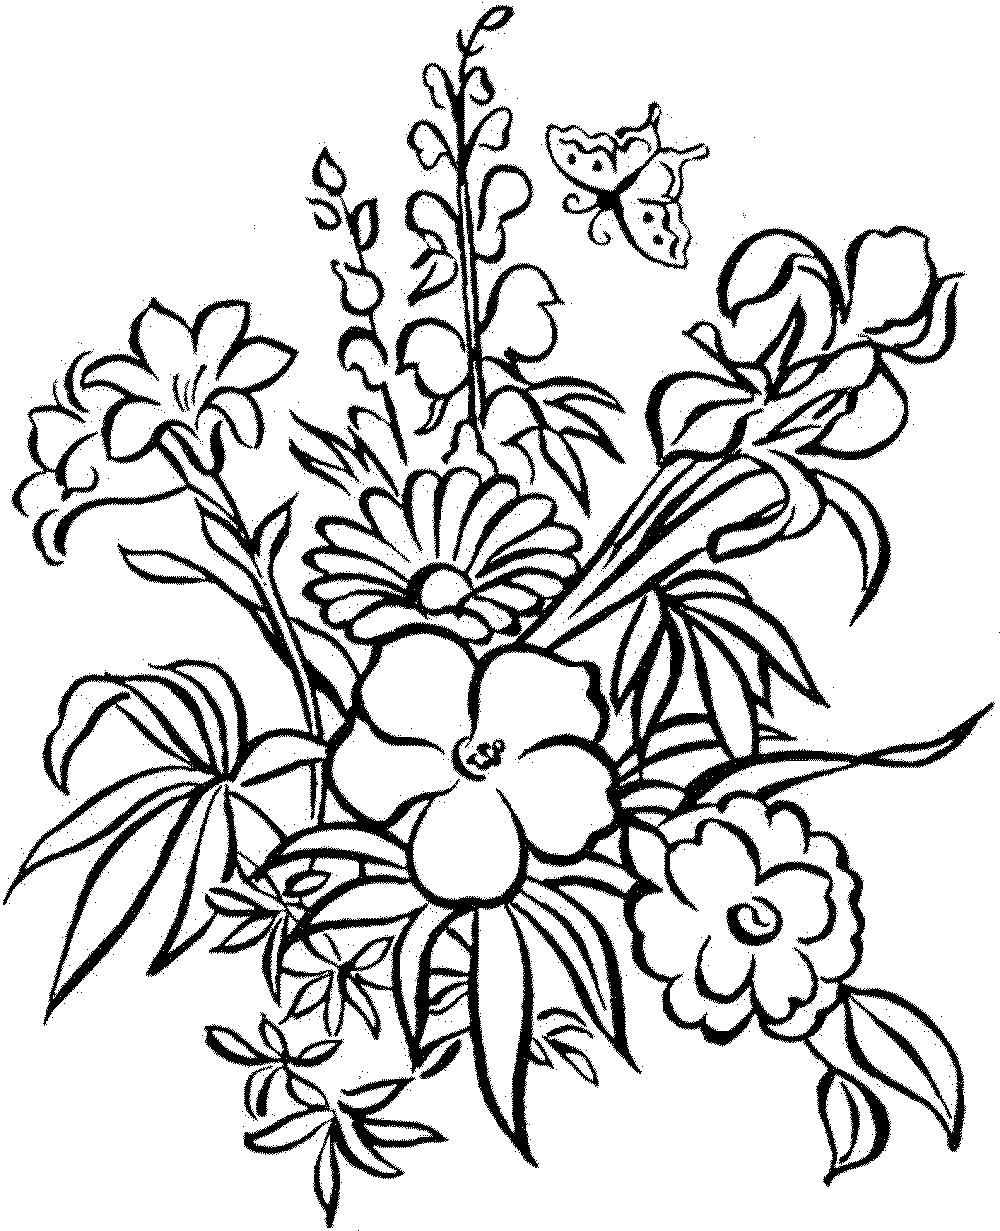 flower coloring pages printables free easy to print flower coloring pages tulamama flower printables pages coloring